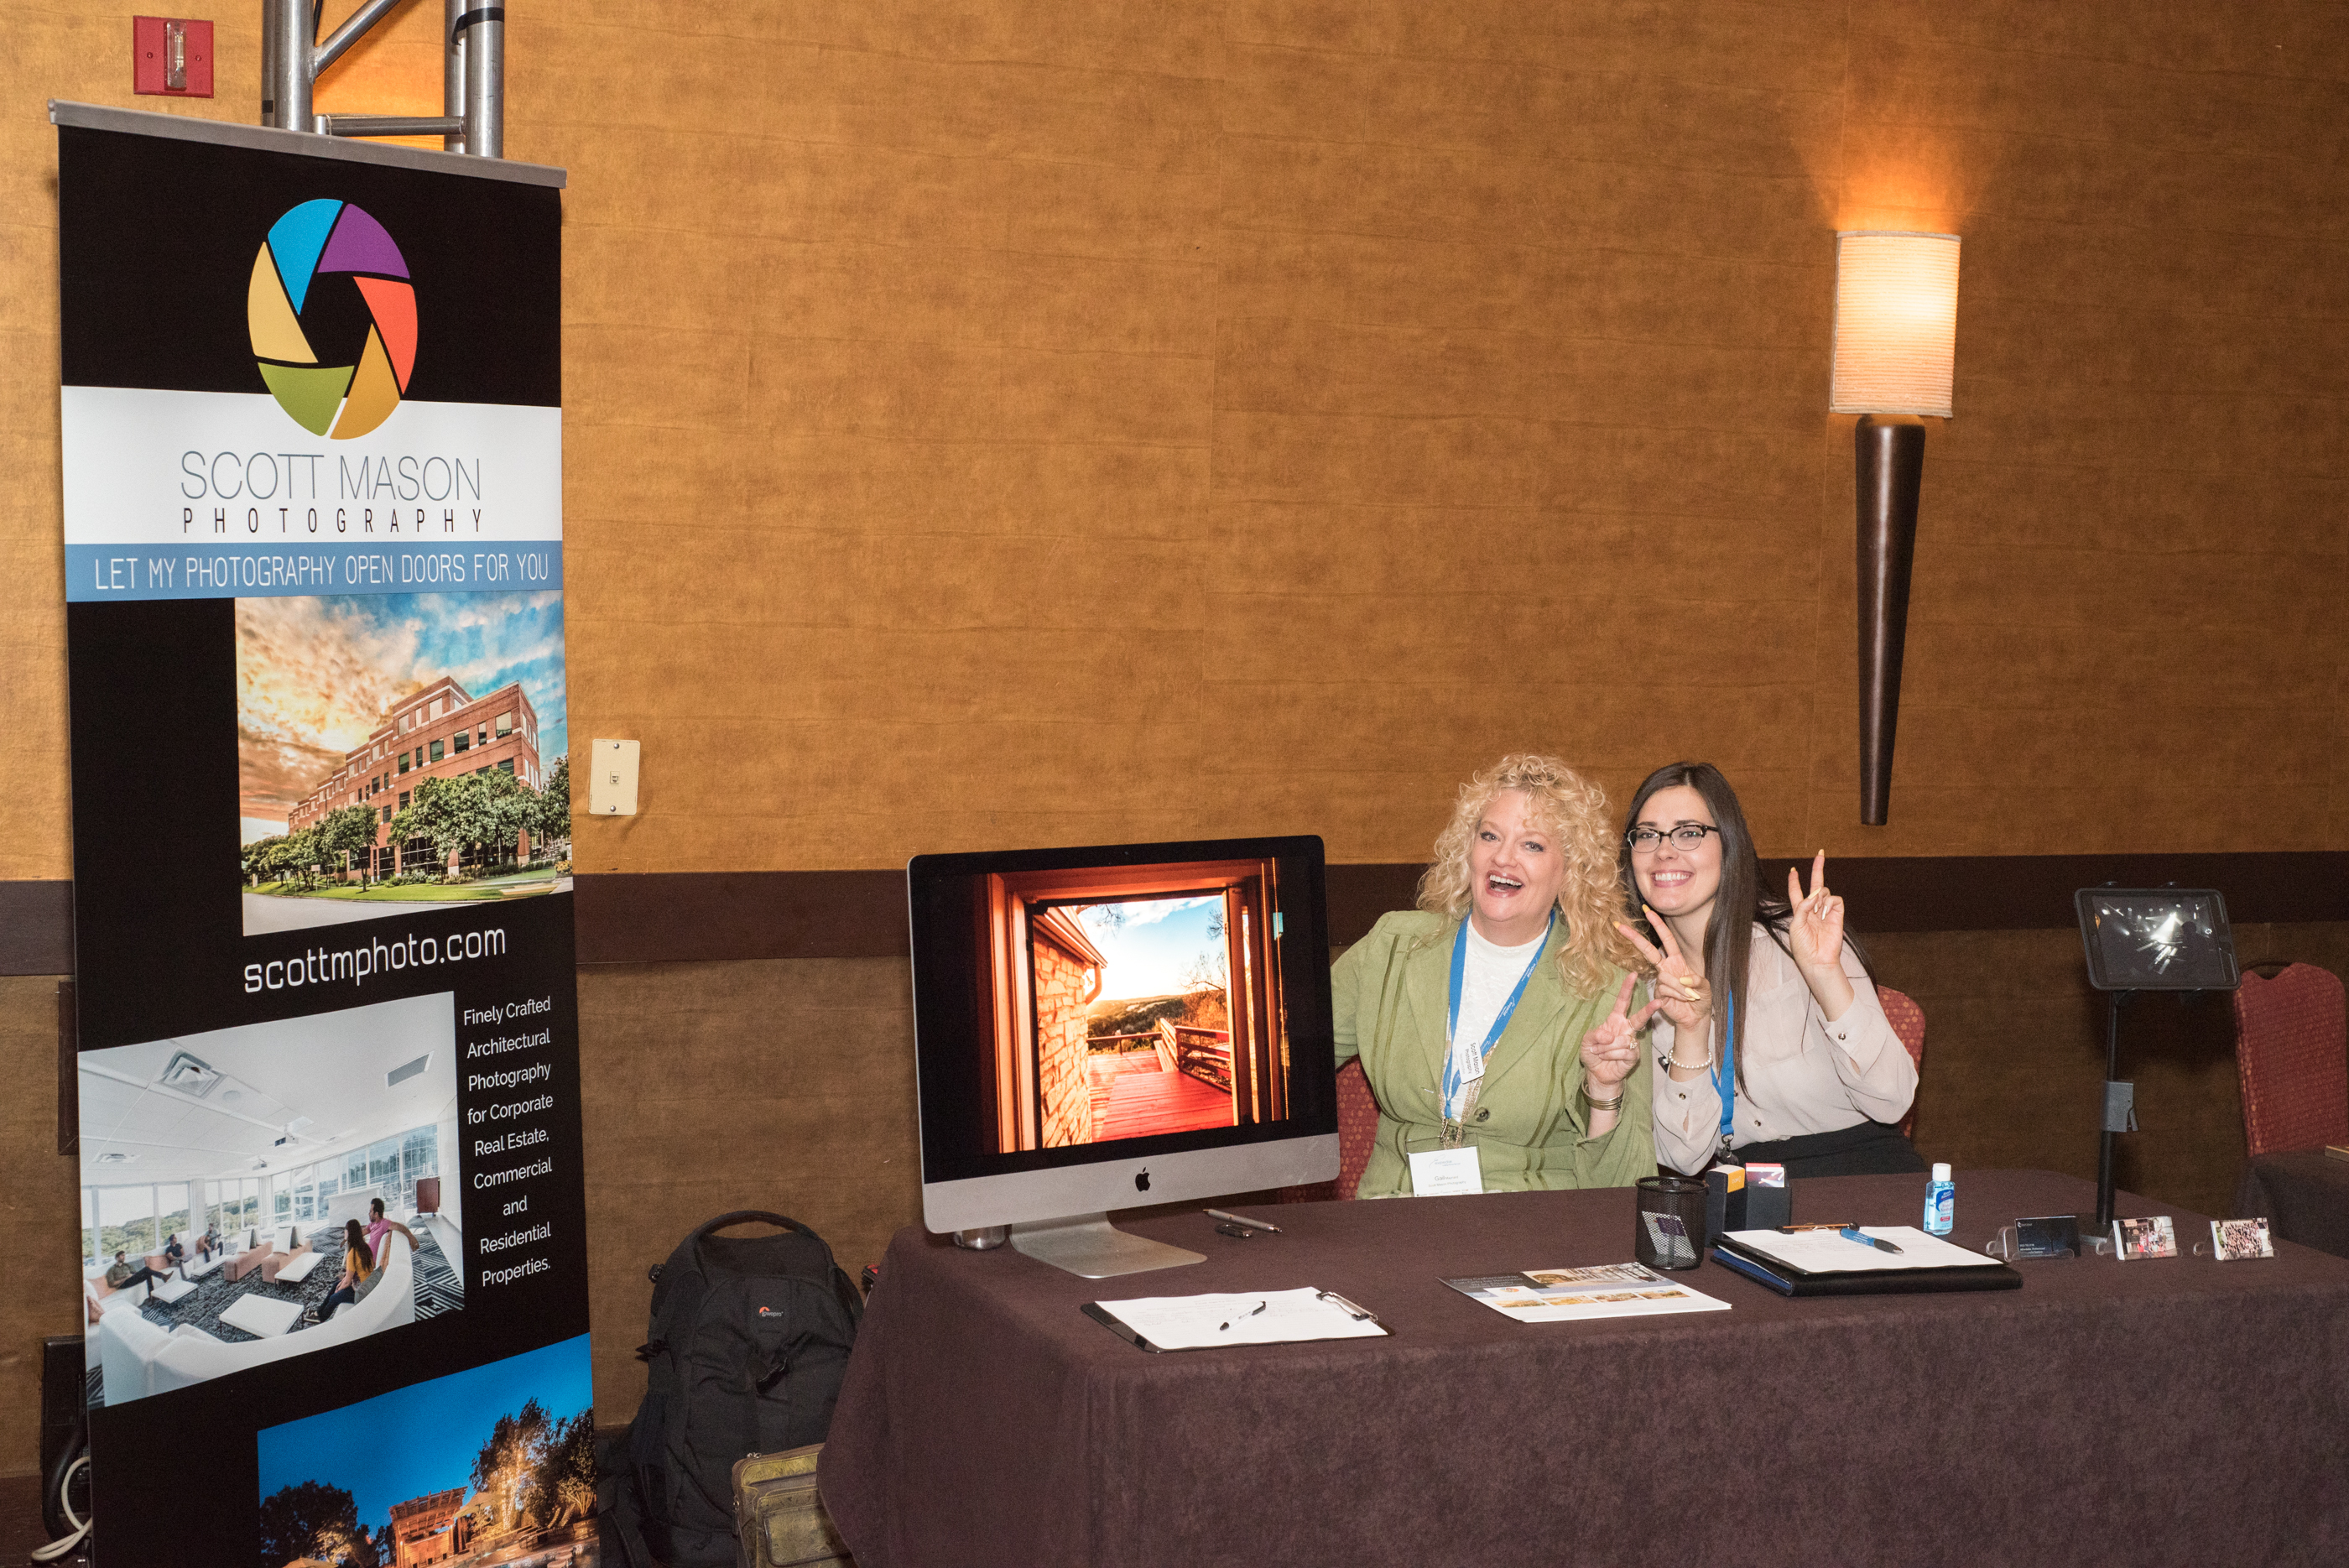 the photo booth for Scott Mason Photography at the Austin Market Expo 2015